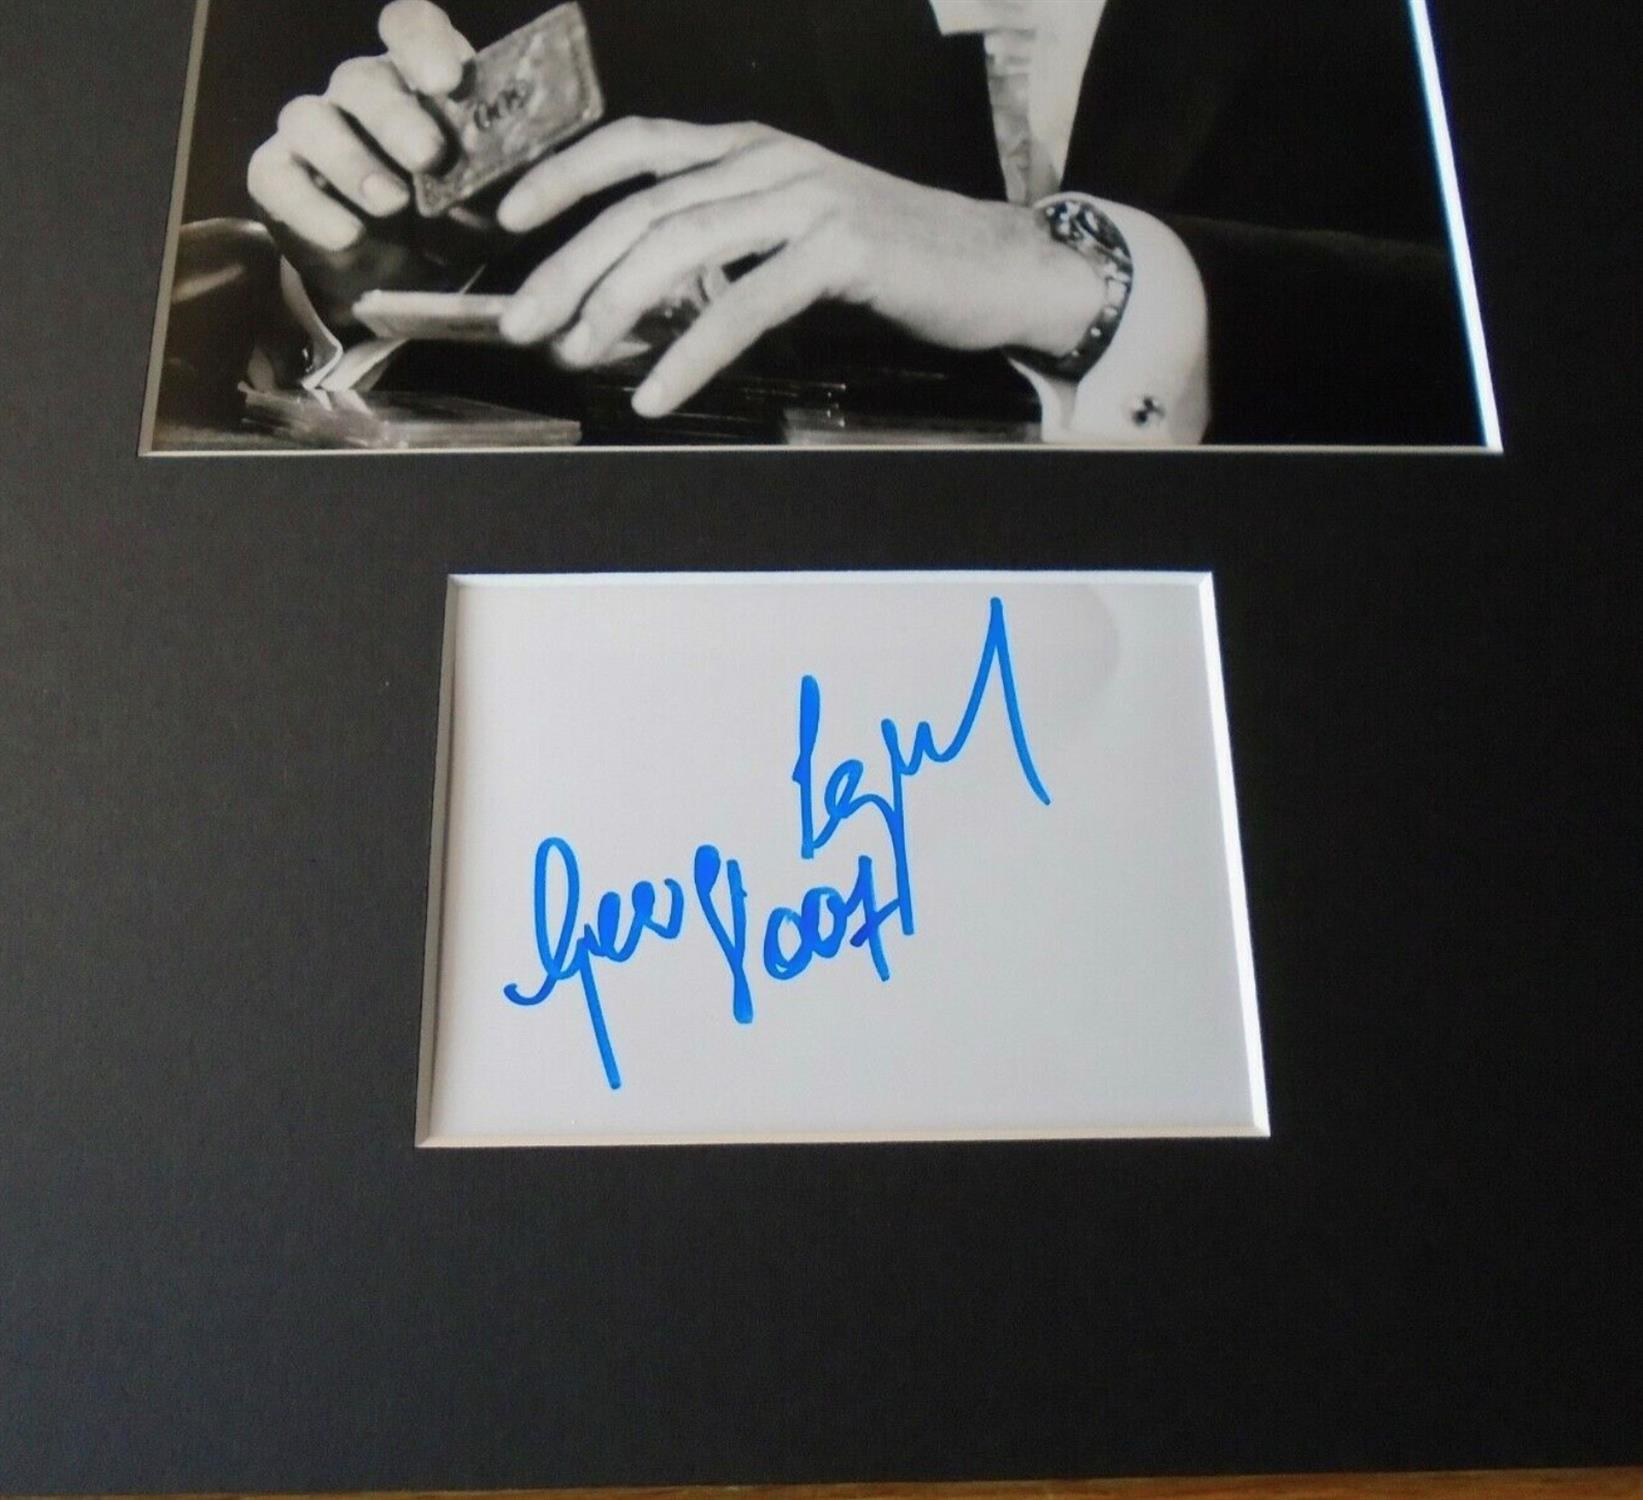 A Genuine Hand-Signed George Lazenby 007 Signature on Card - Image 2 of 2